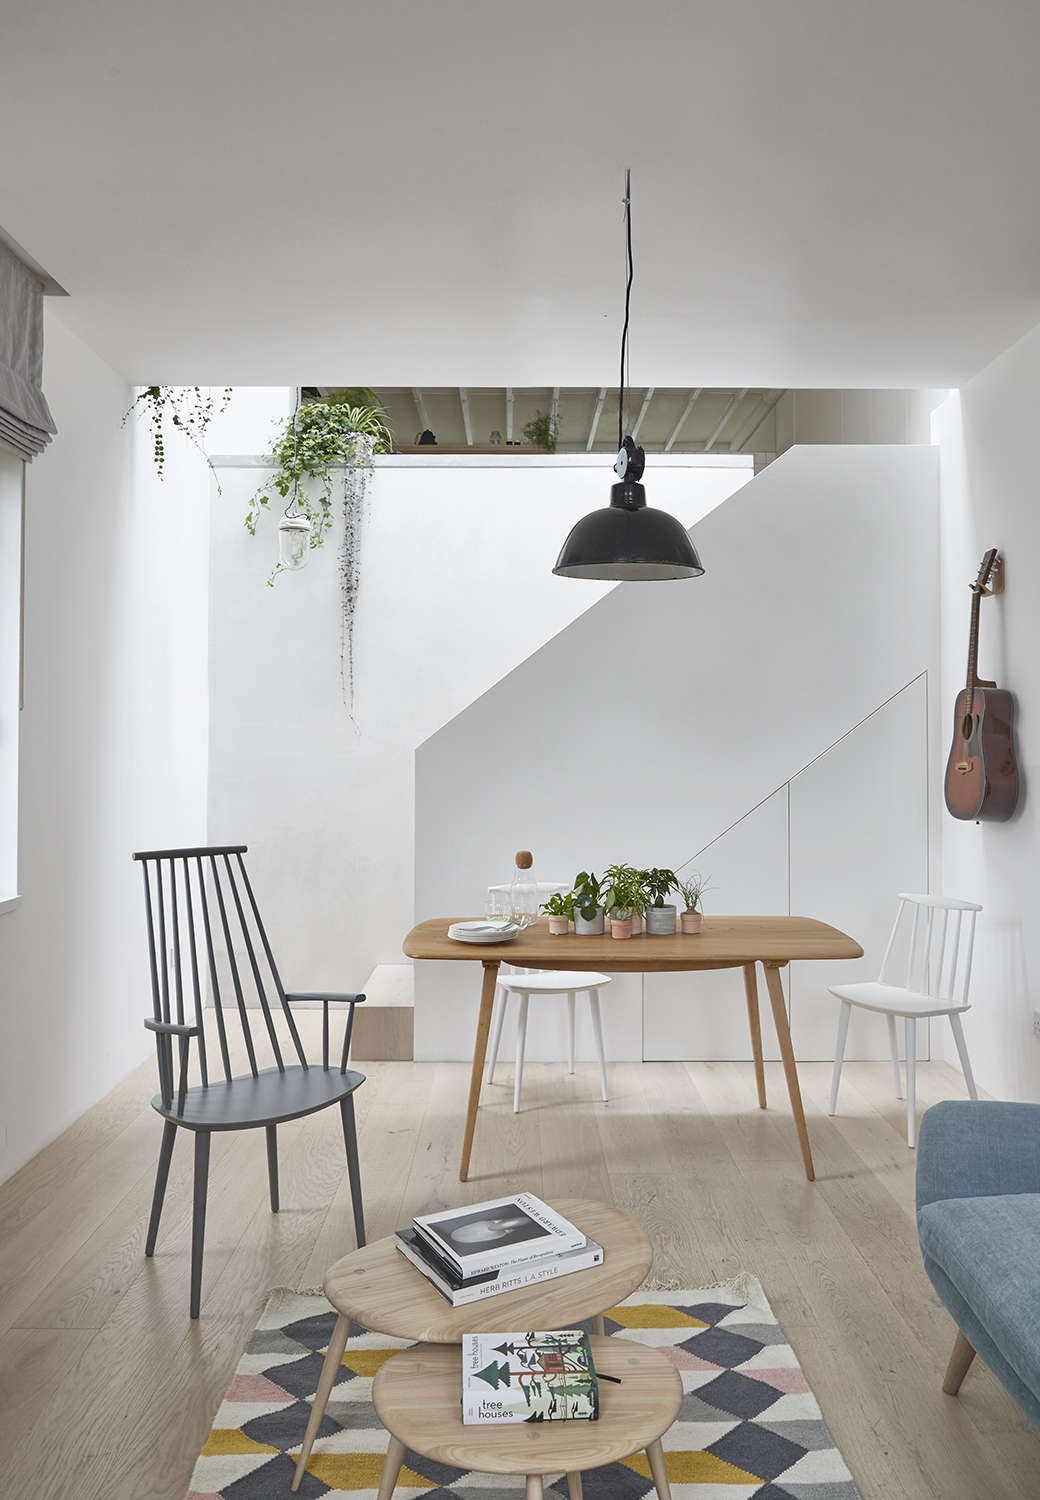 Among the biggest changes to the space: moving the stairway into the center of the house, near the kitchen. Hutchinson also installed a wide skylight over the stair to bring a shaft of light into the darker back areas. Underneath the stair, the hot water heater and extra storage—&#8